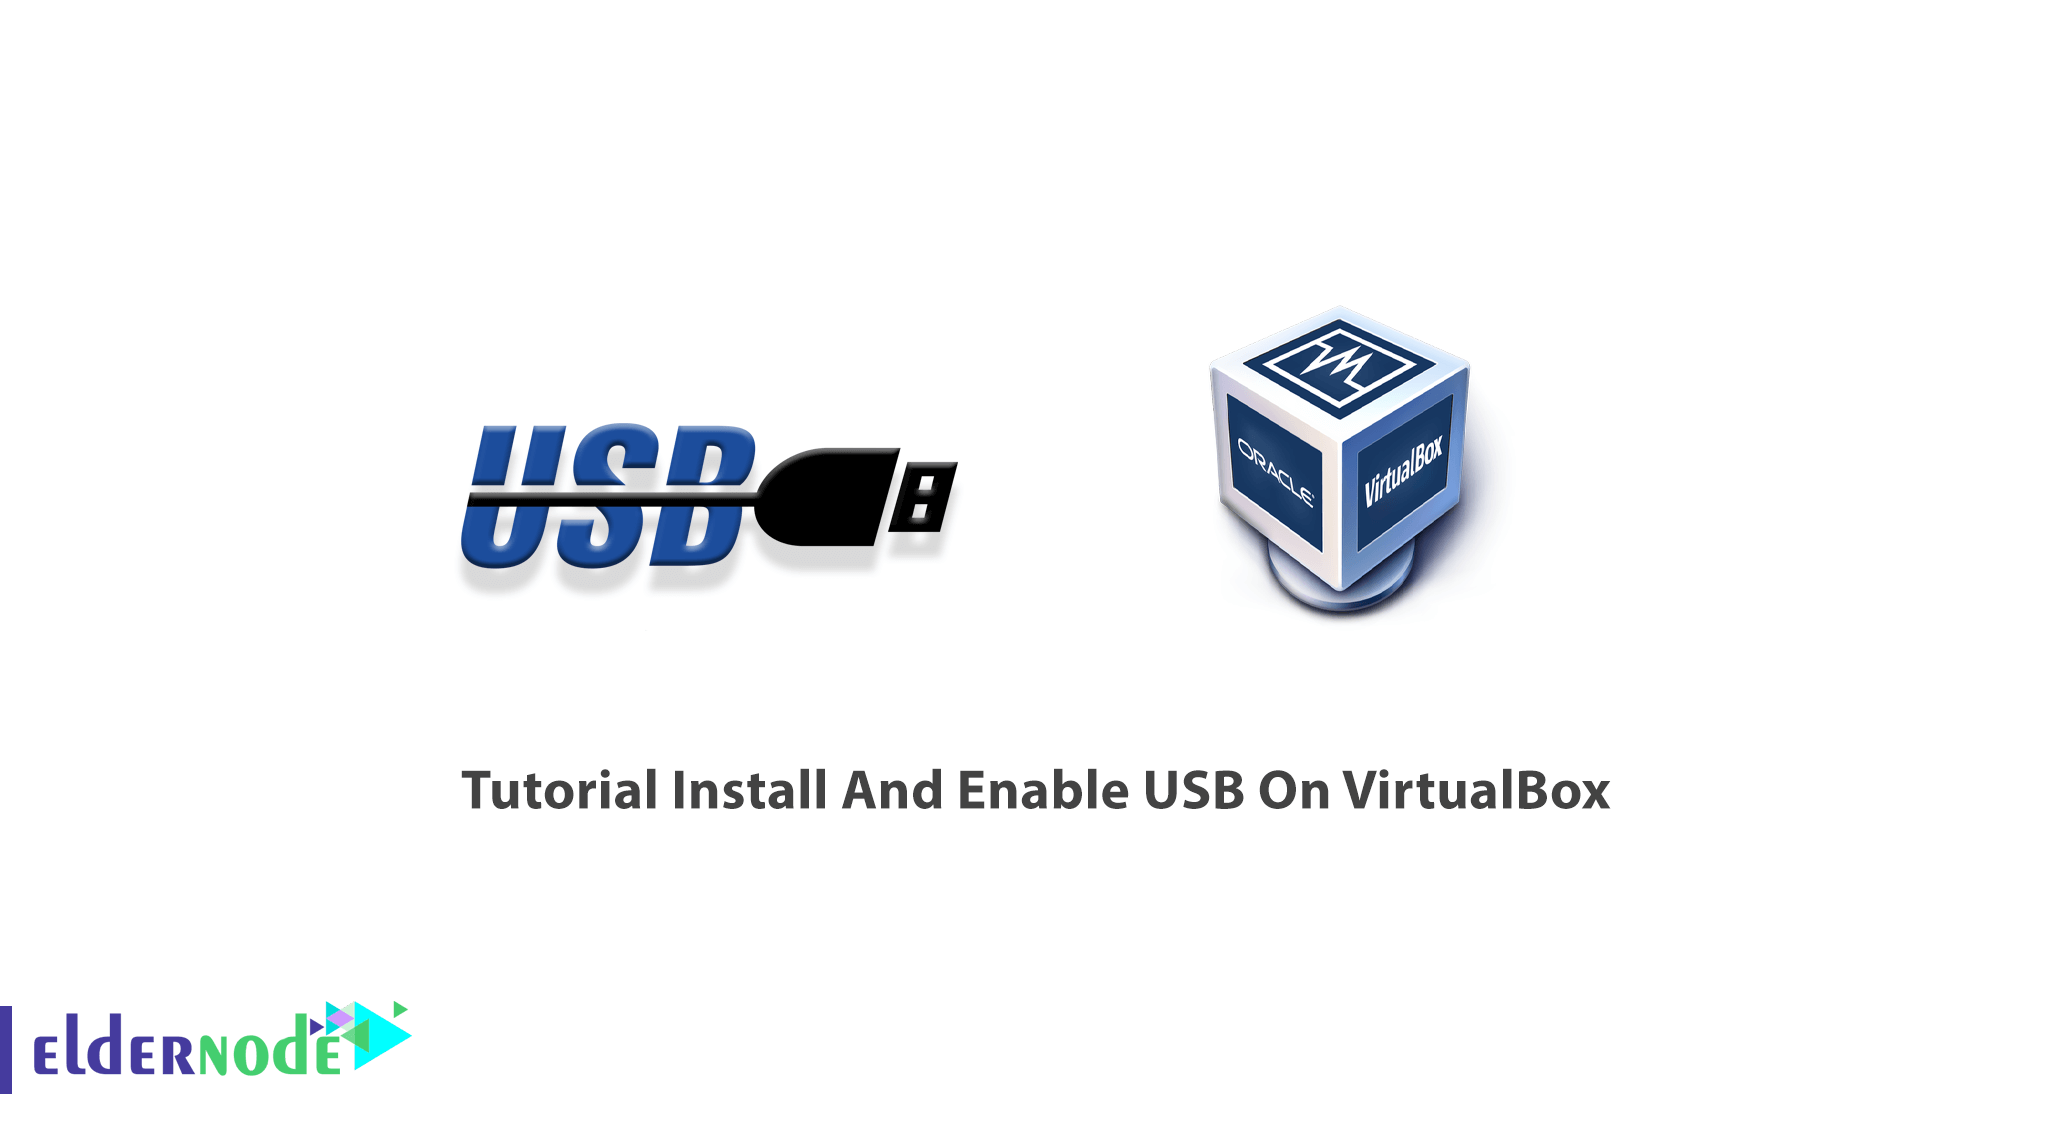 Tutorial Install And Enable USB On VirtualBox